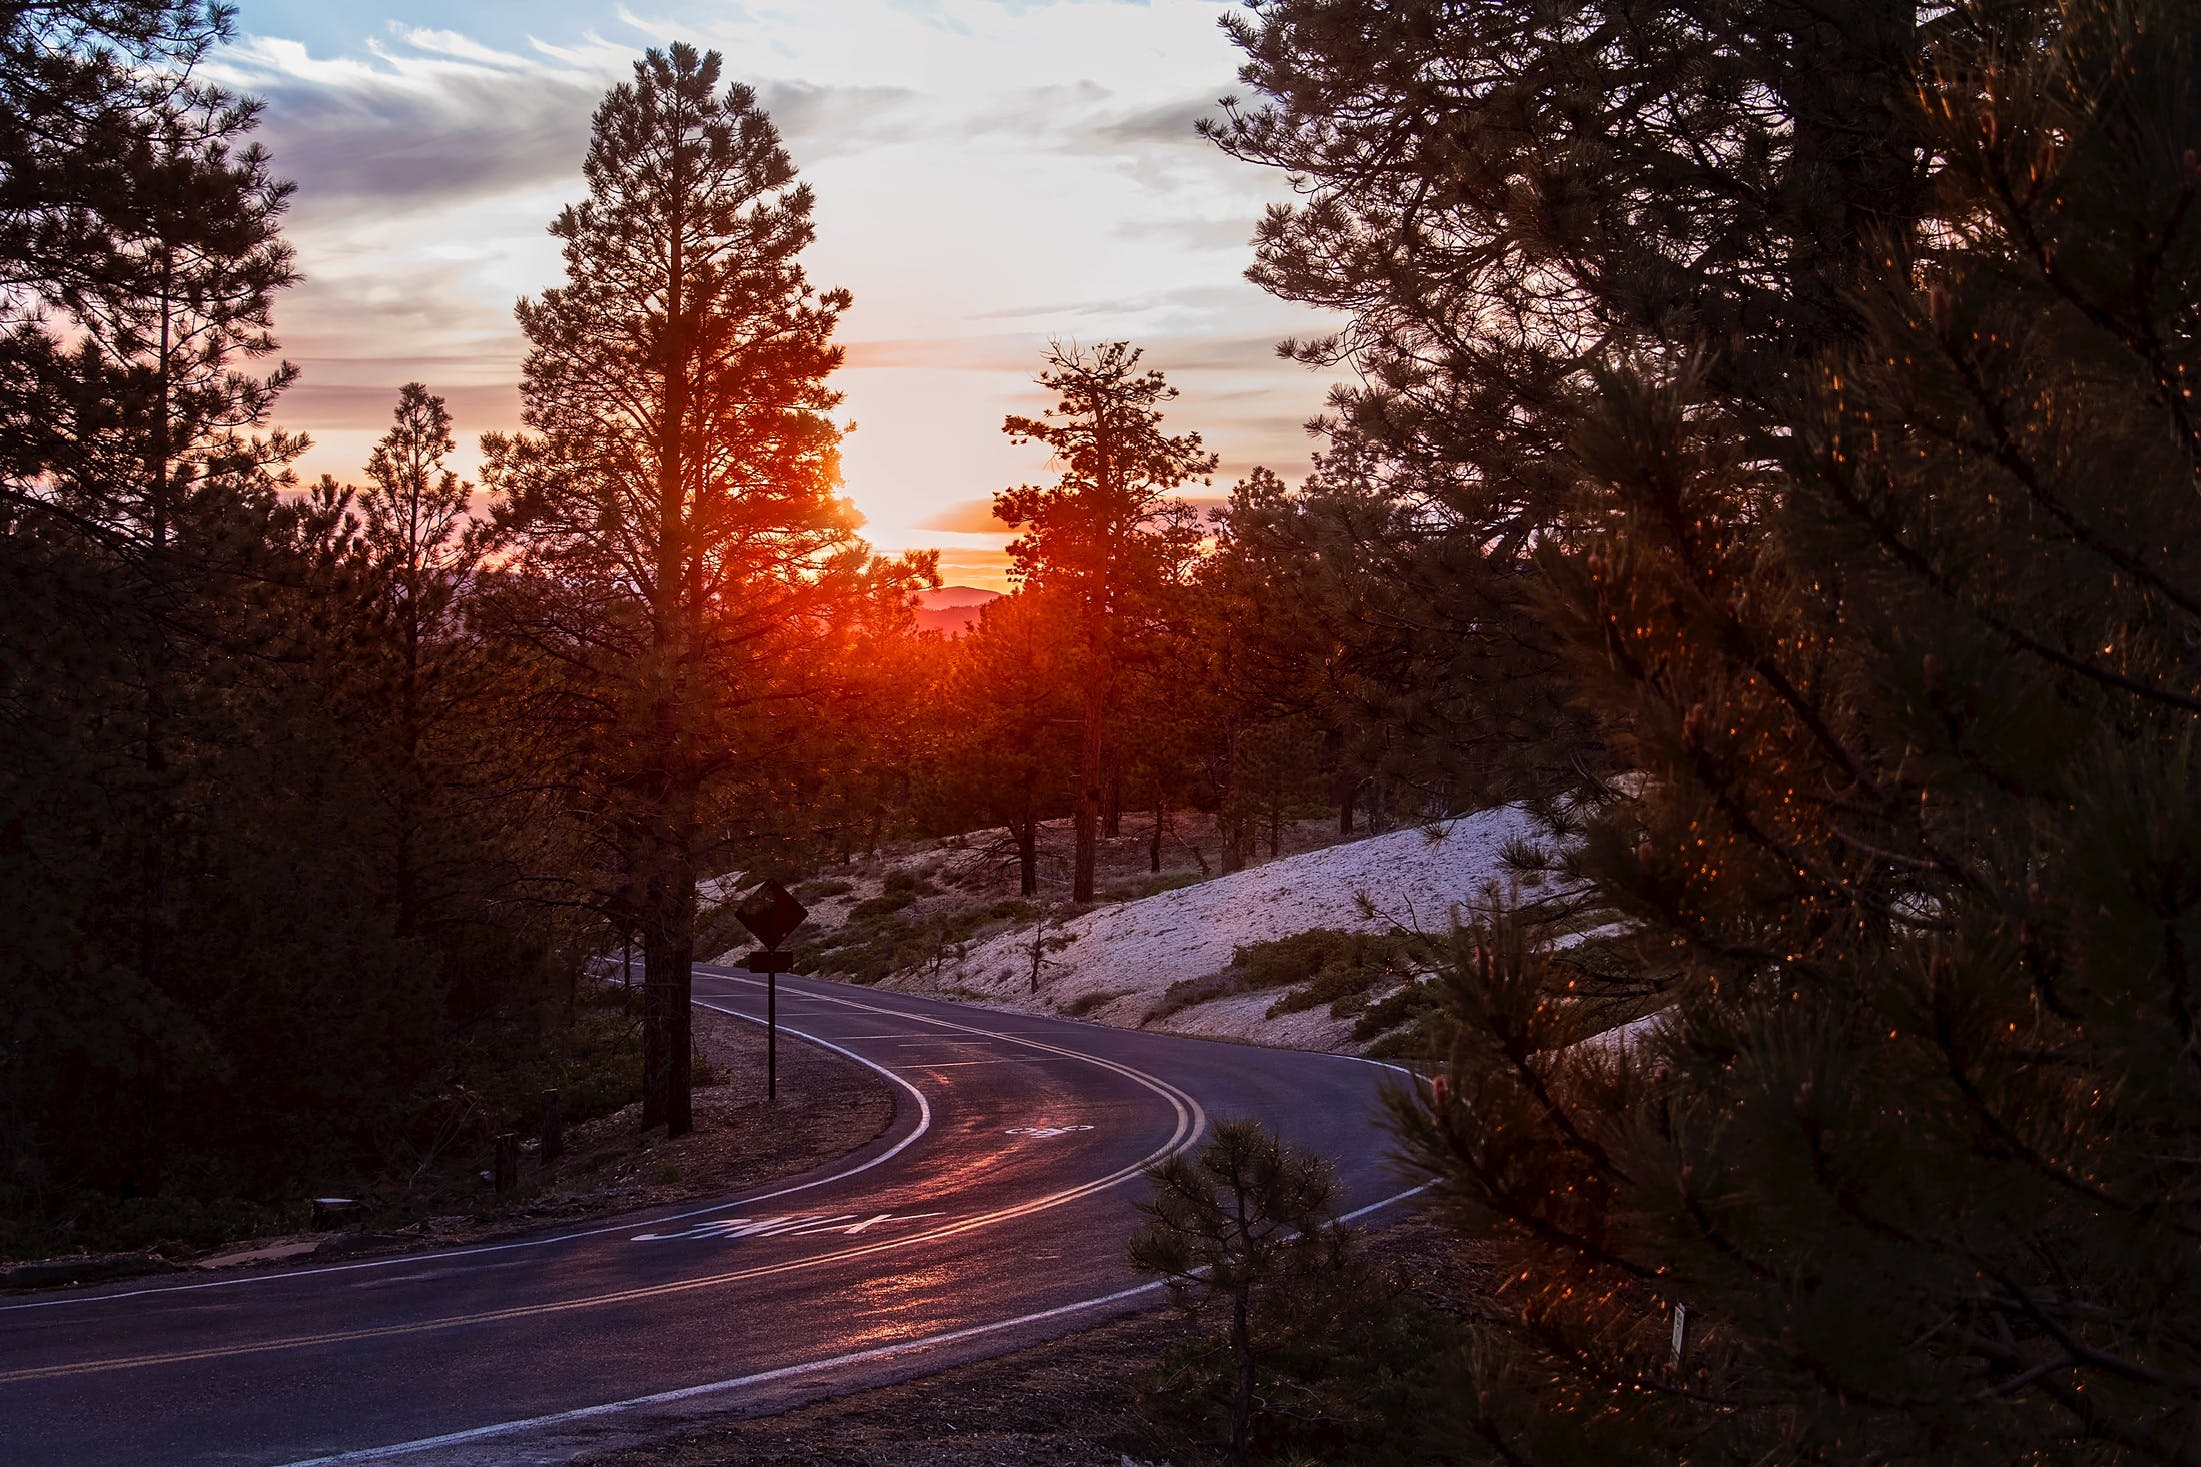 Road Amidst Trees Against Sky during Sunset